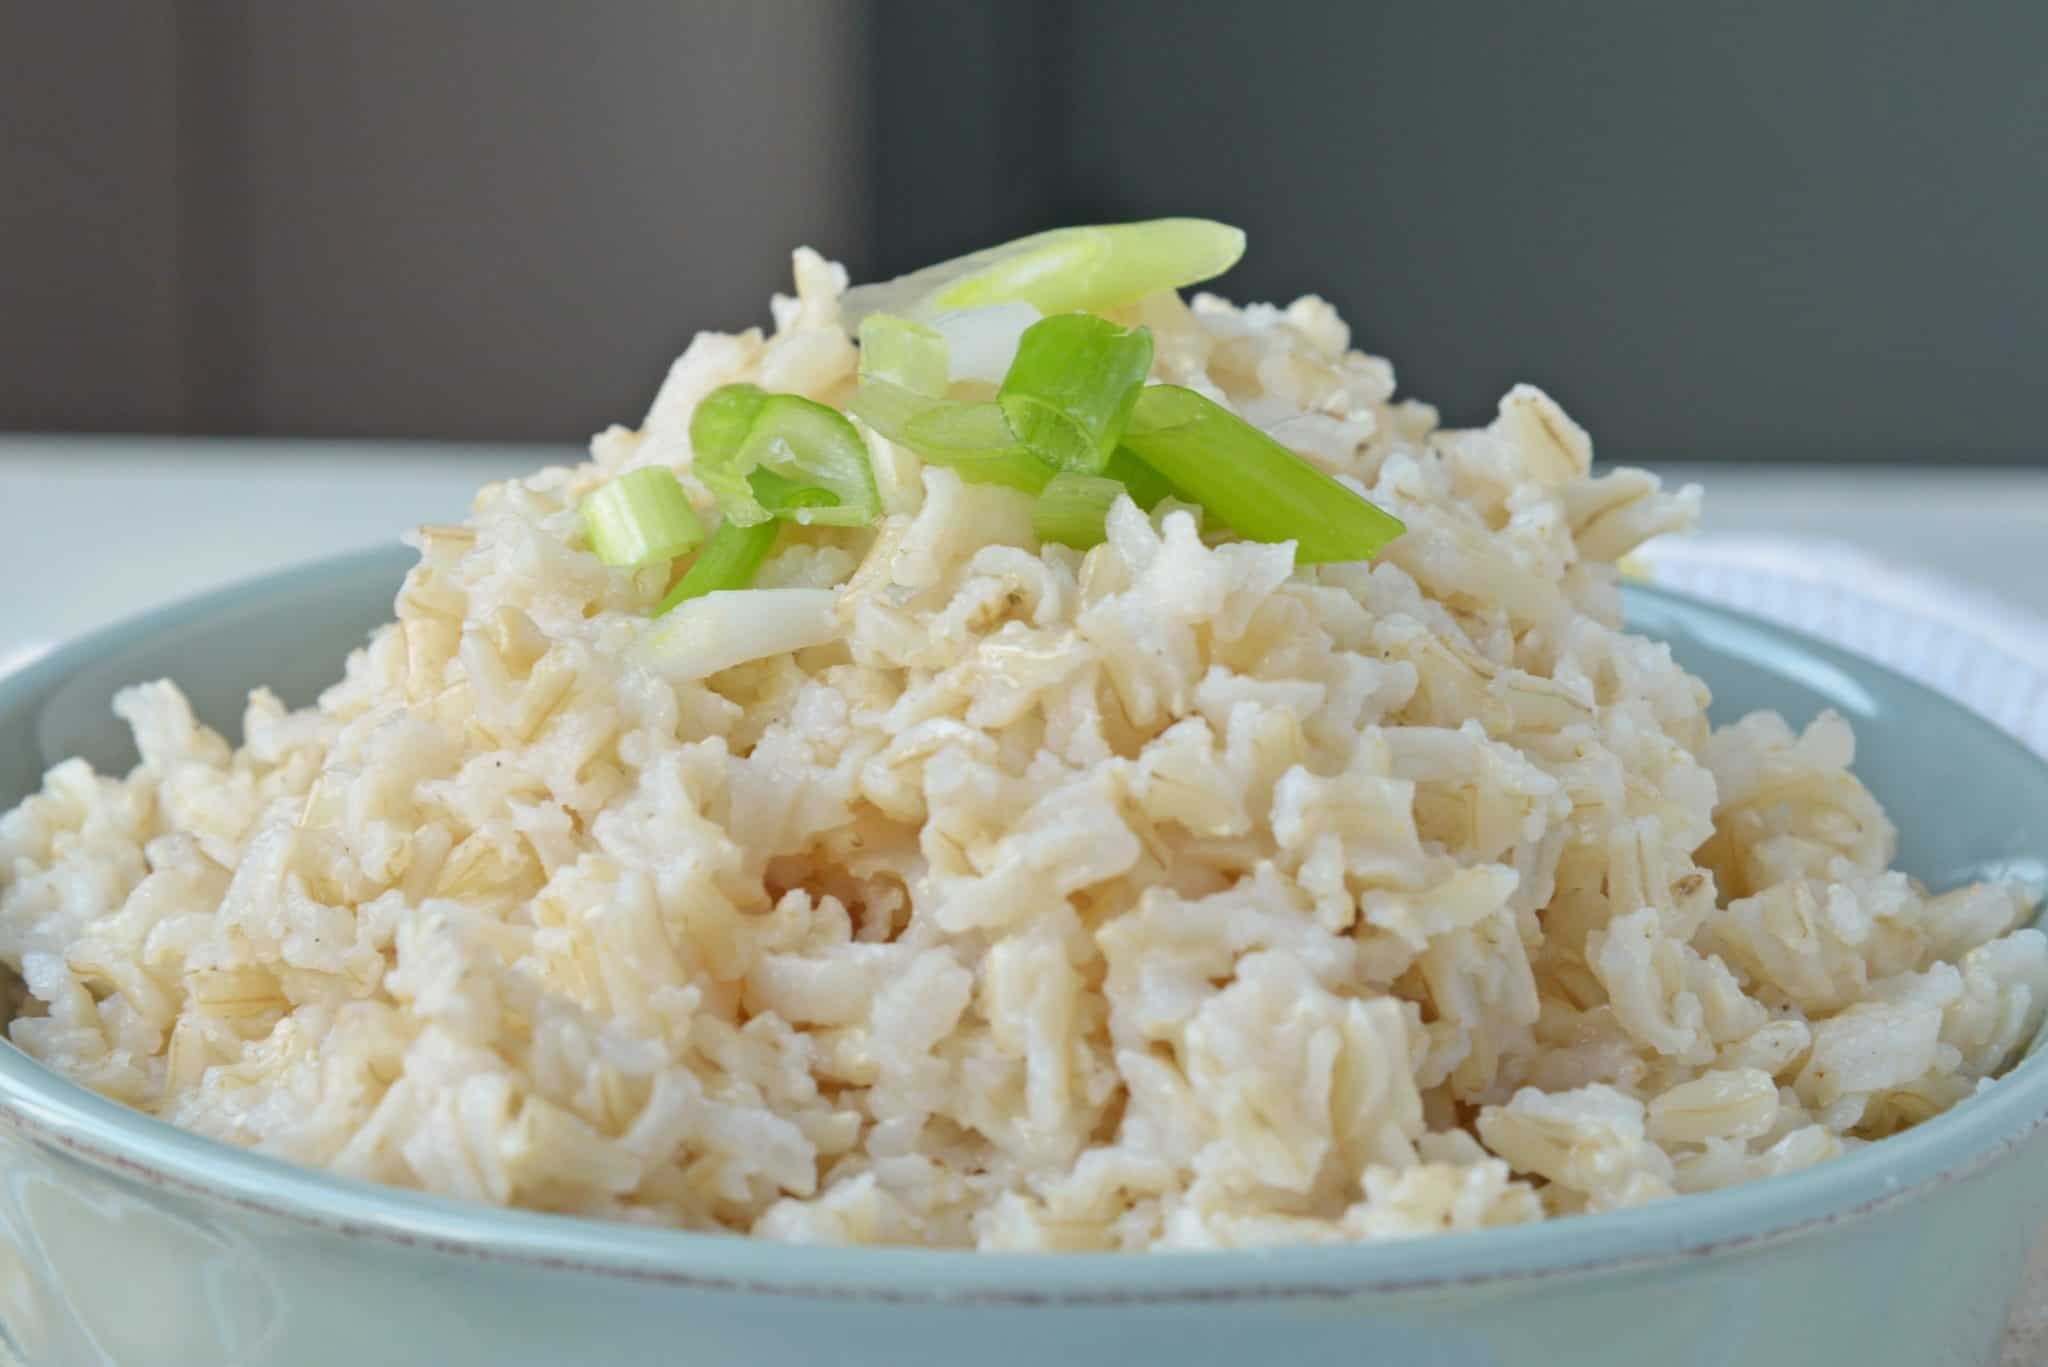 Ginger Rice is an easy and delicious jasmine rice recipe that's full of flavor. Great as a standalone side or as part of another Asian dish. #gingerrice #jasminericerecipes www.savoryexperiments.com